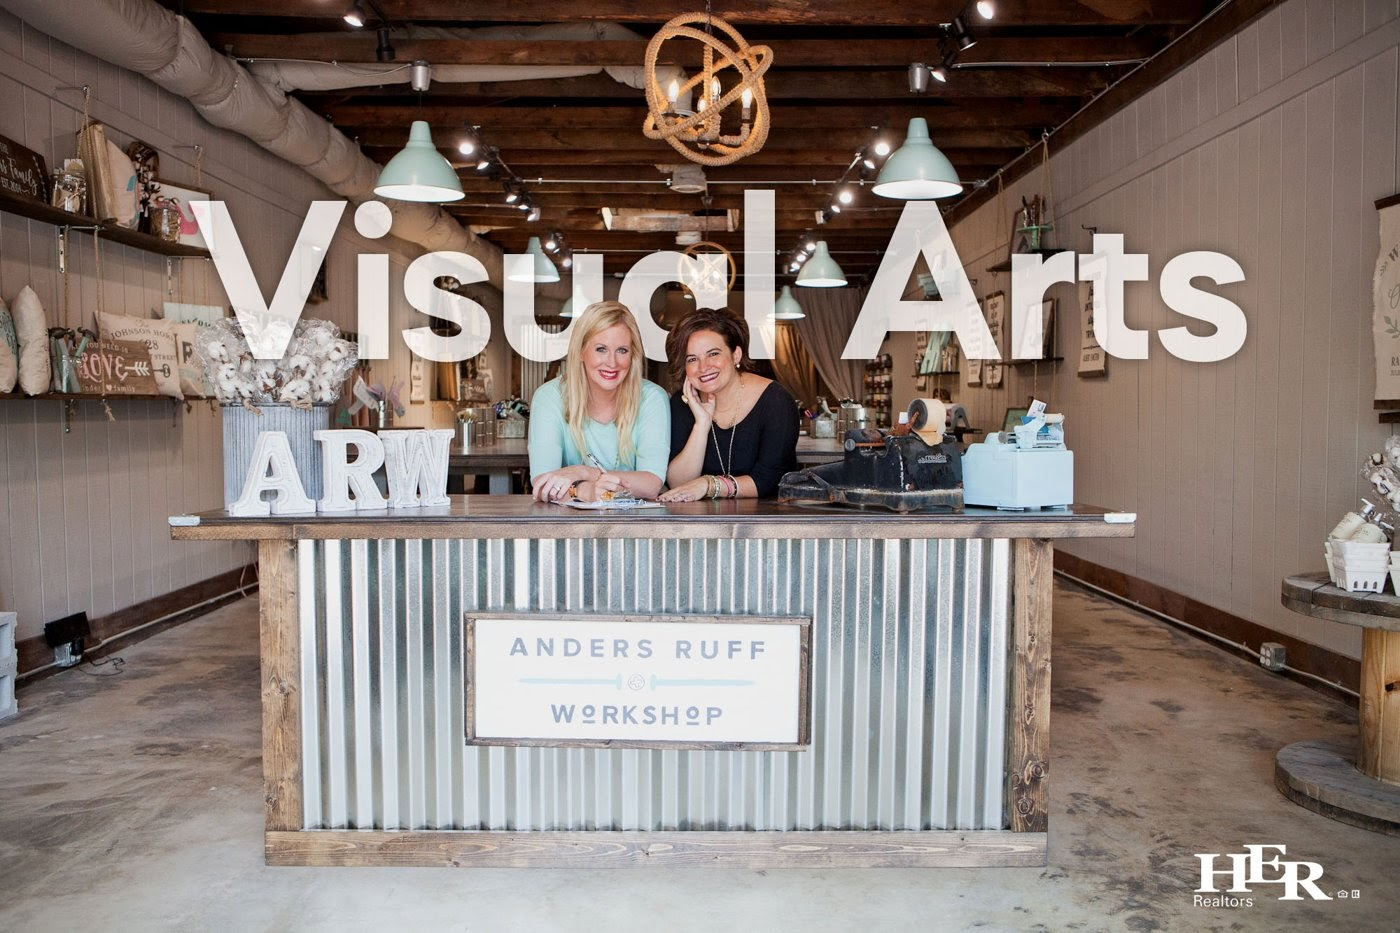 An image of the visual arts in Grove City.